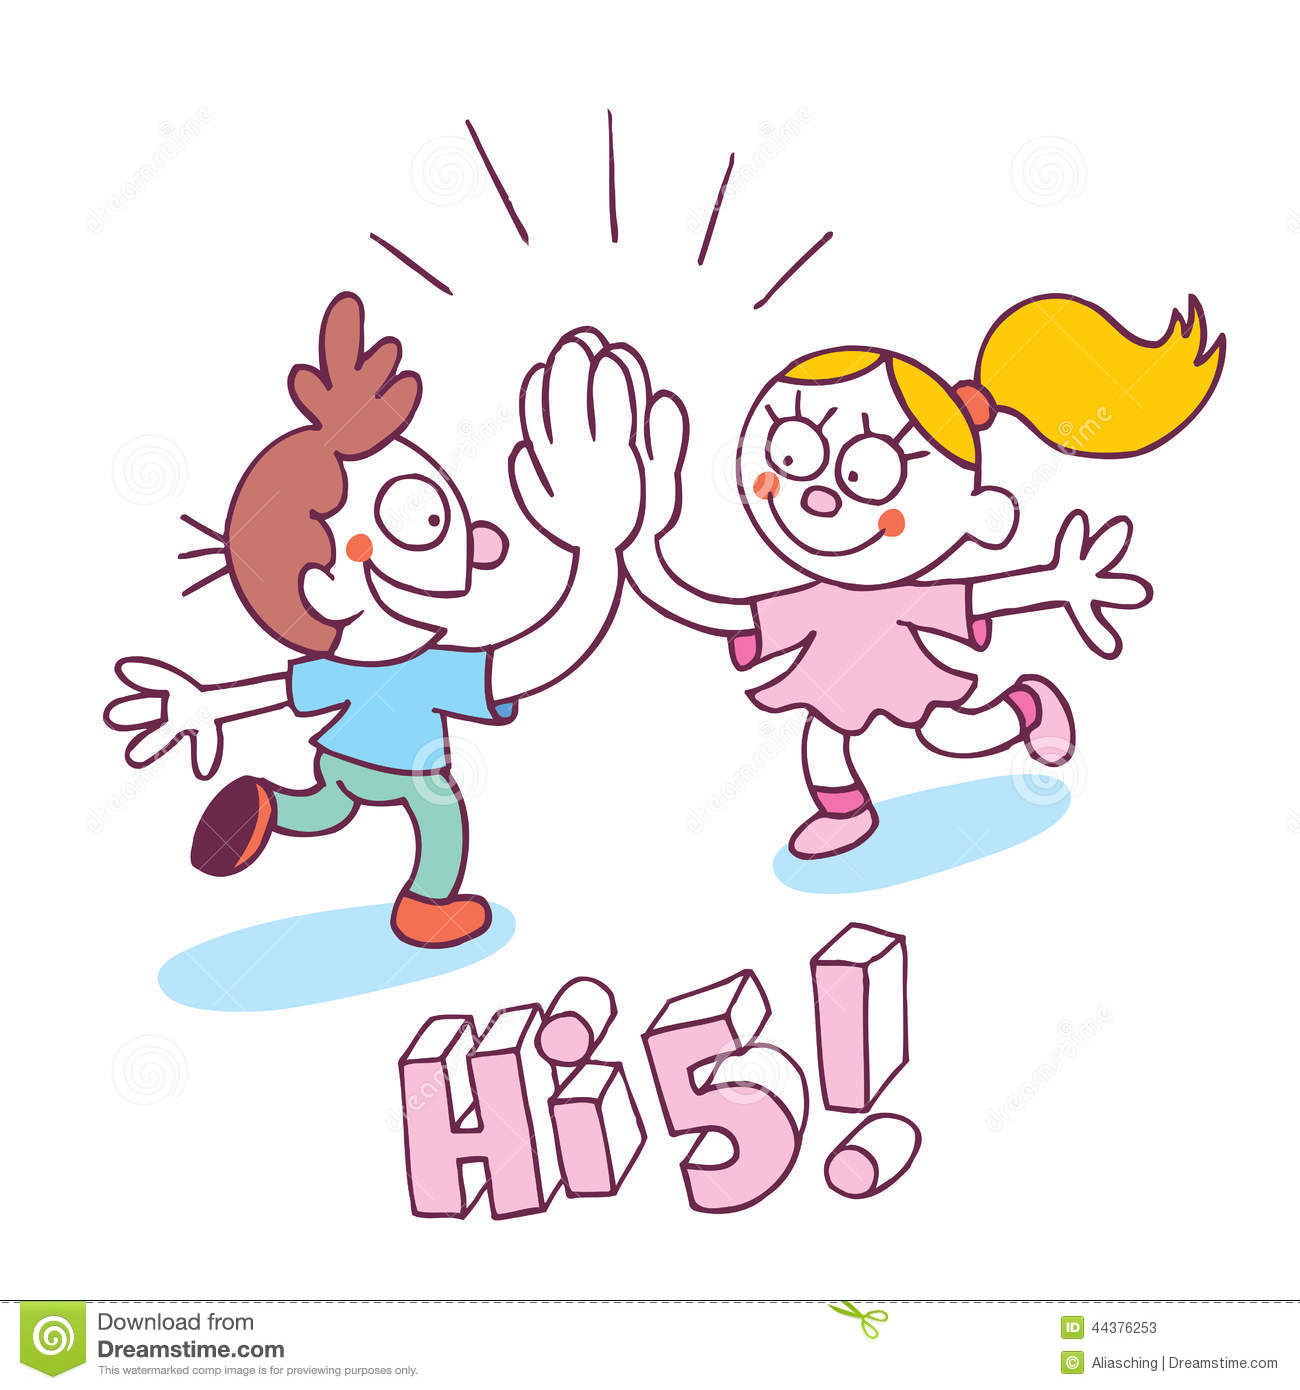 High Five Hand Clipart High Five Kids St-High Five Hand Clipart High Five Kids Stock Photos-12